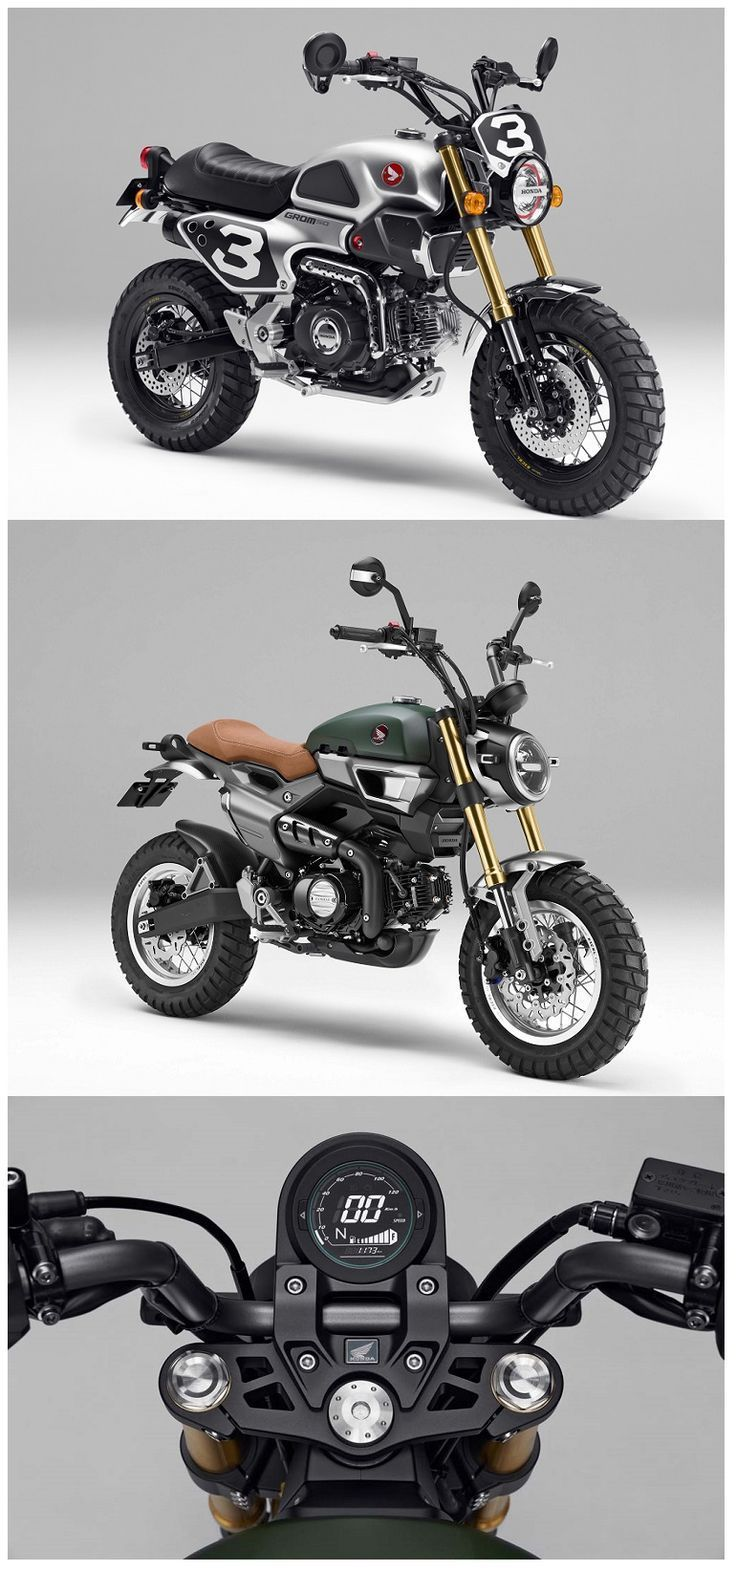 Honda Grom 50 Scrambler Concept Would Be Cool If They Actually